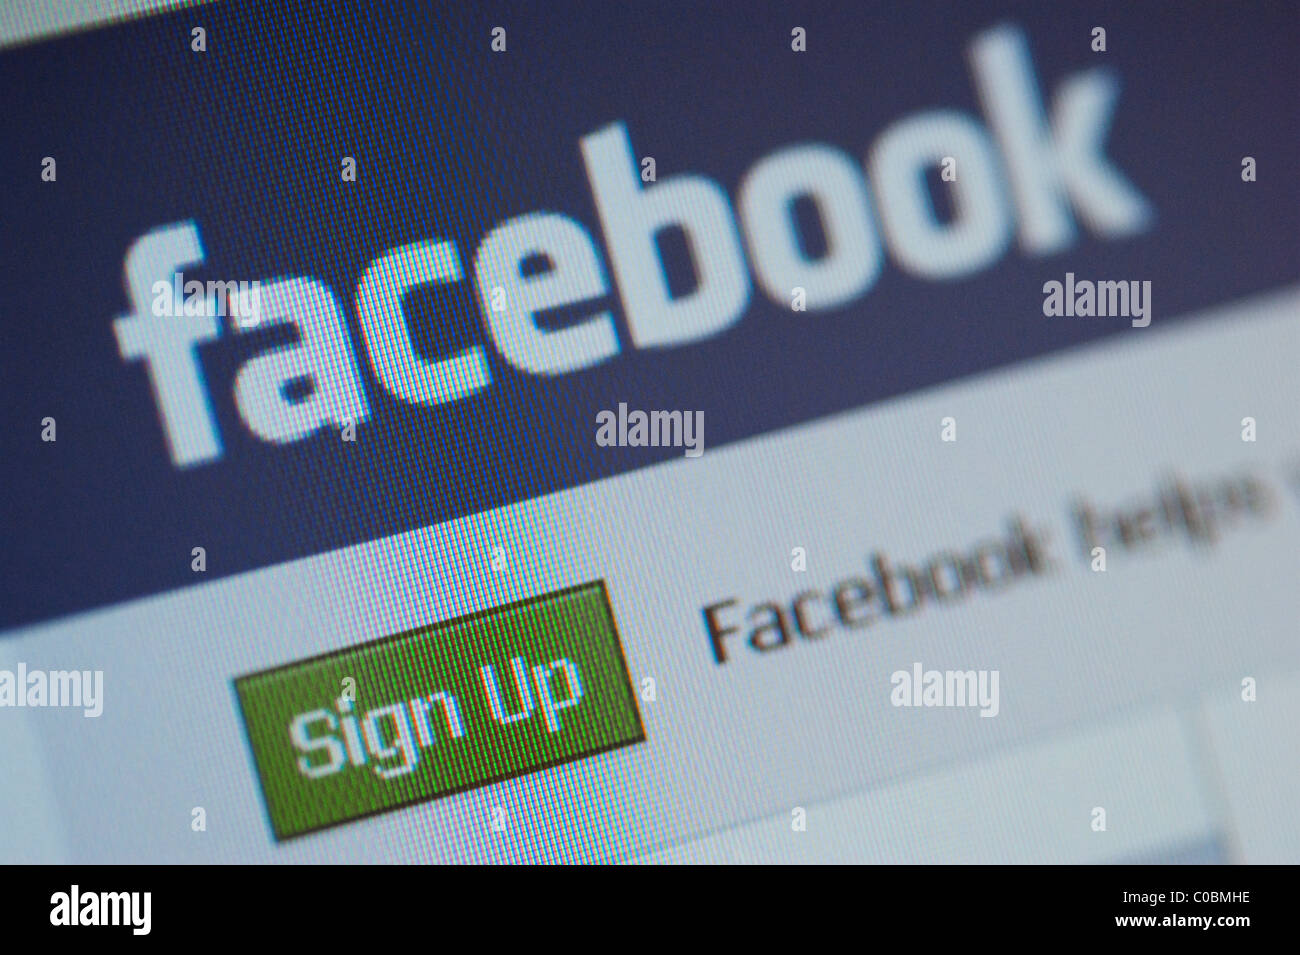 Facebook social networking website. Sign Up screen. - Stock Image